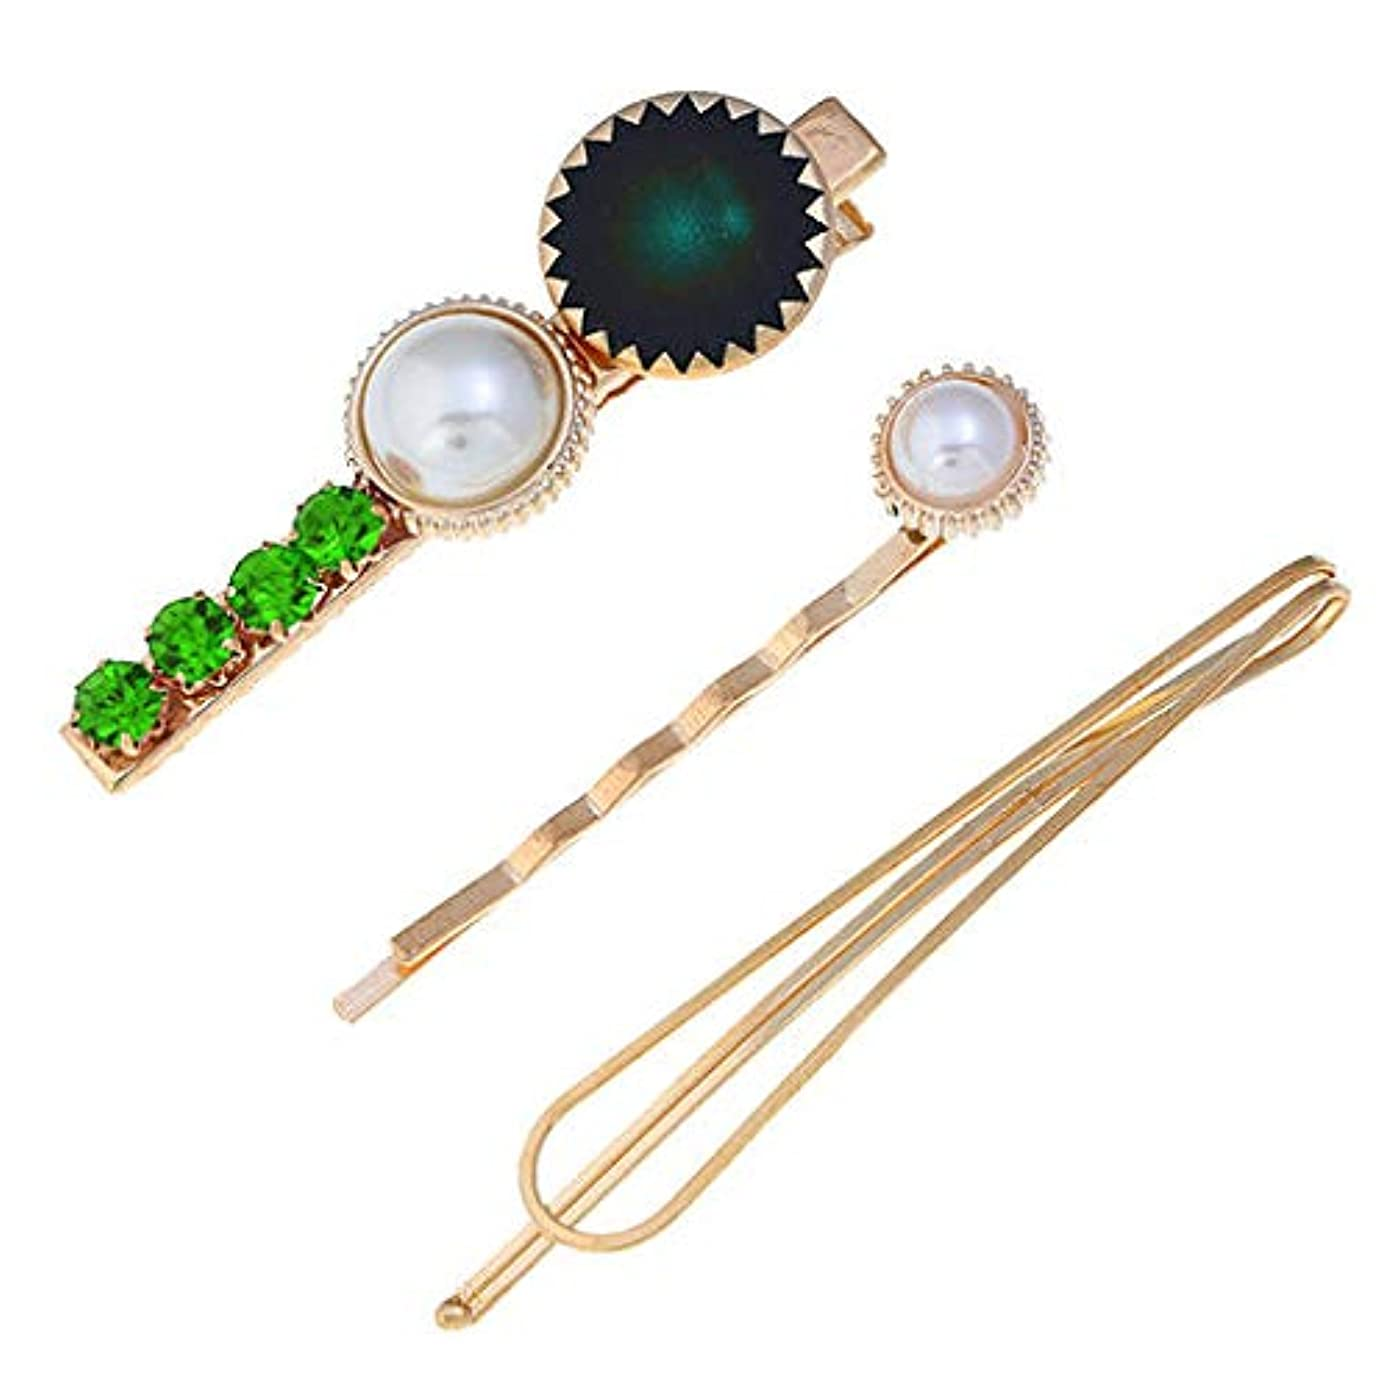 Junshion Women's Fashion Hair Clip Trendy Sweet Romantic Pearl Button Sen Retro Multicolor Hairpin Girl Jewelry